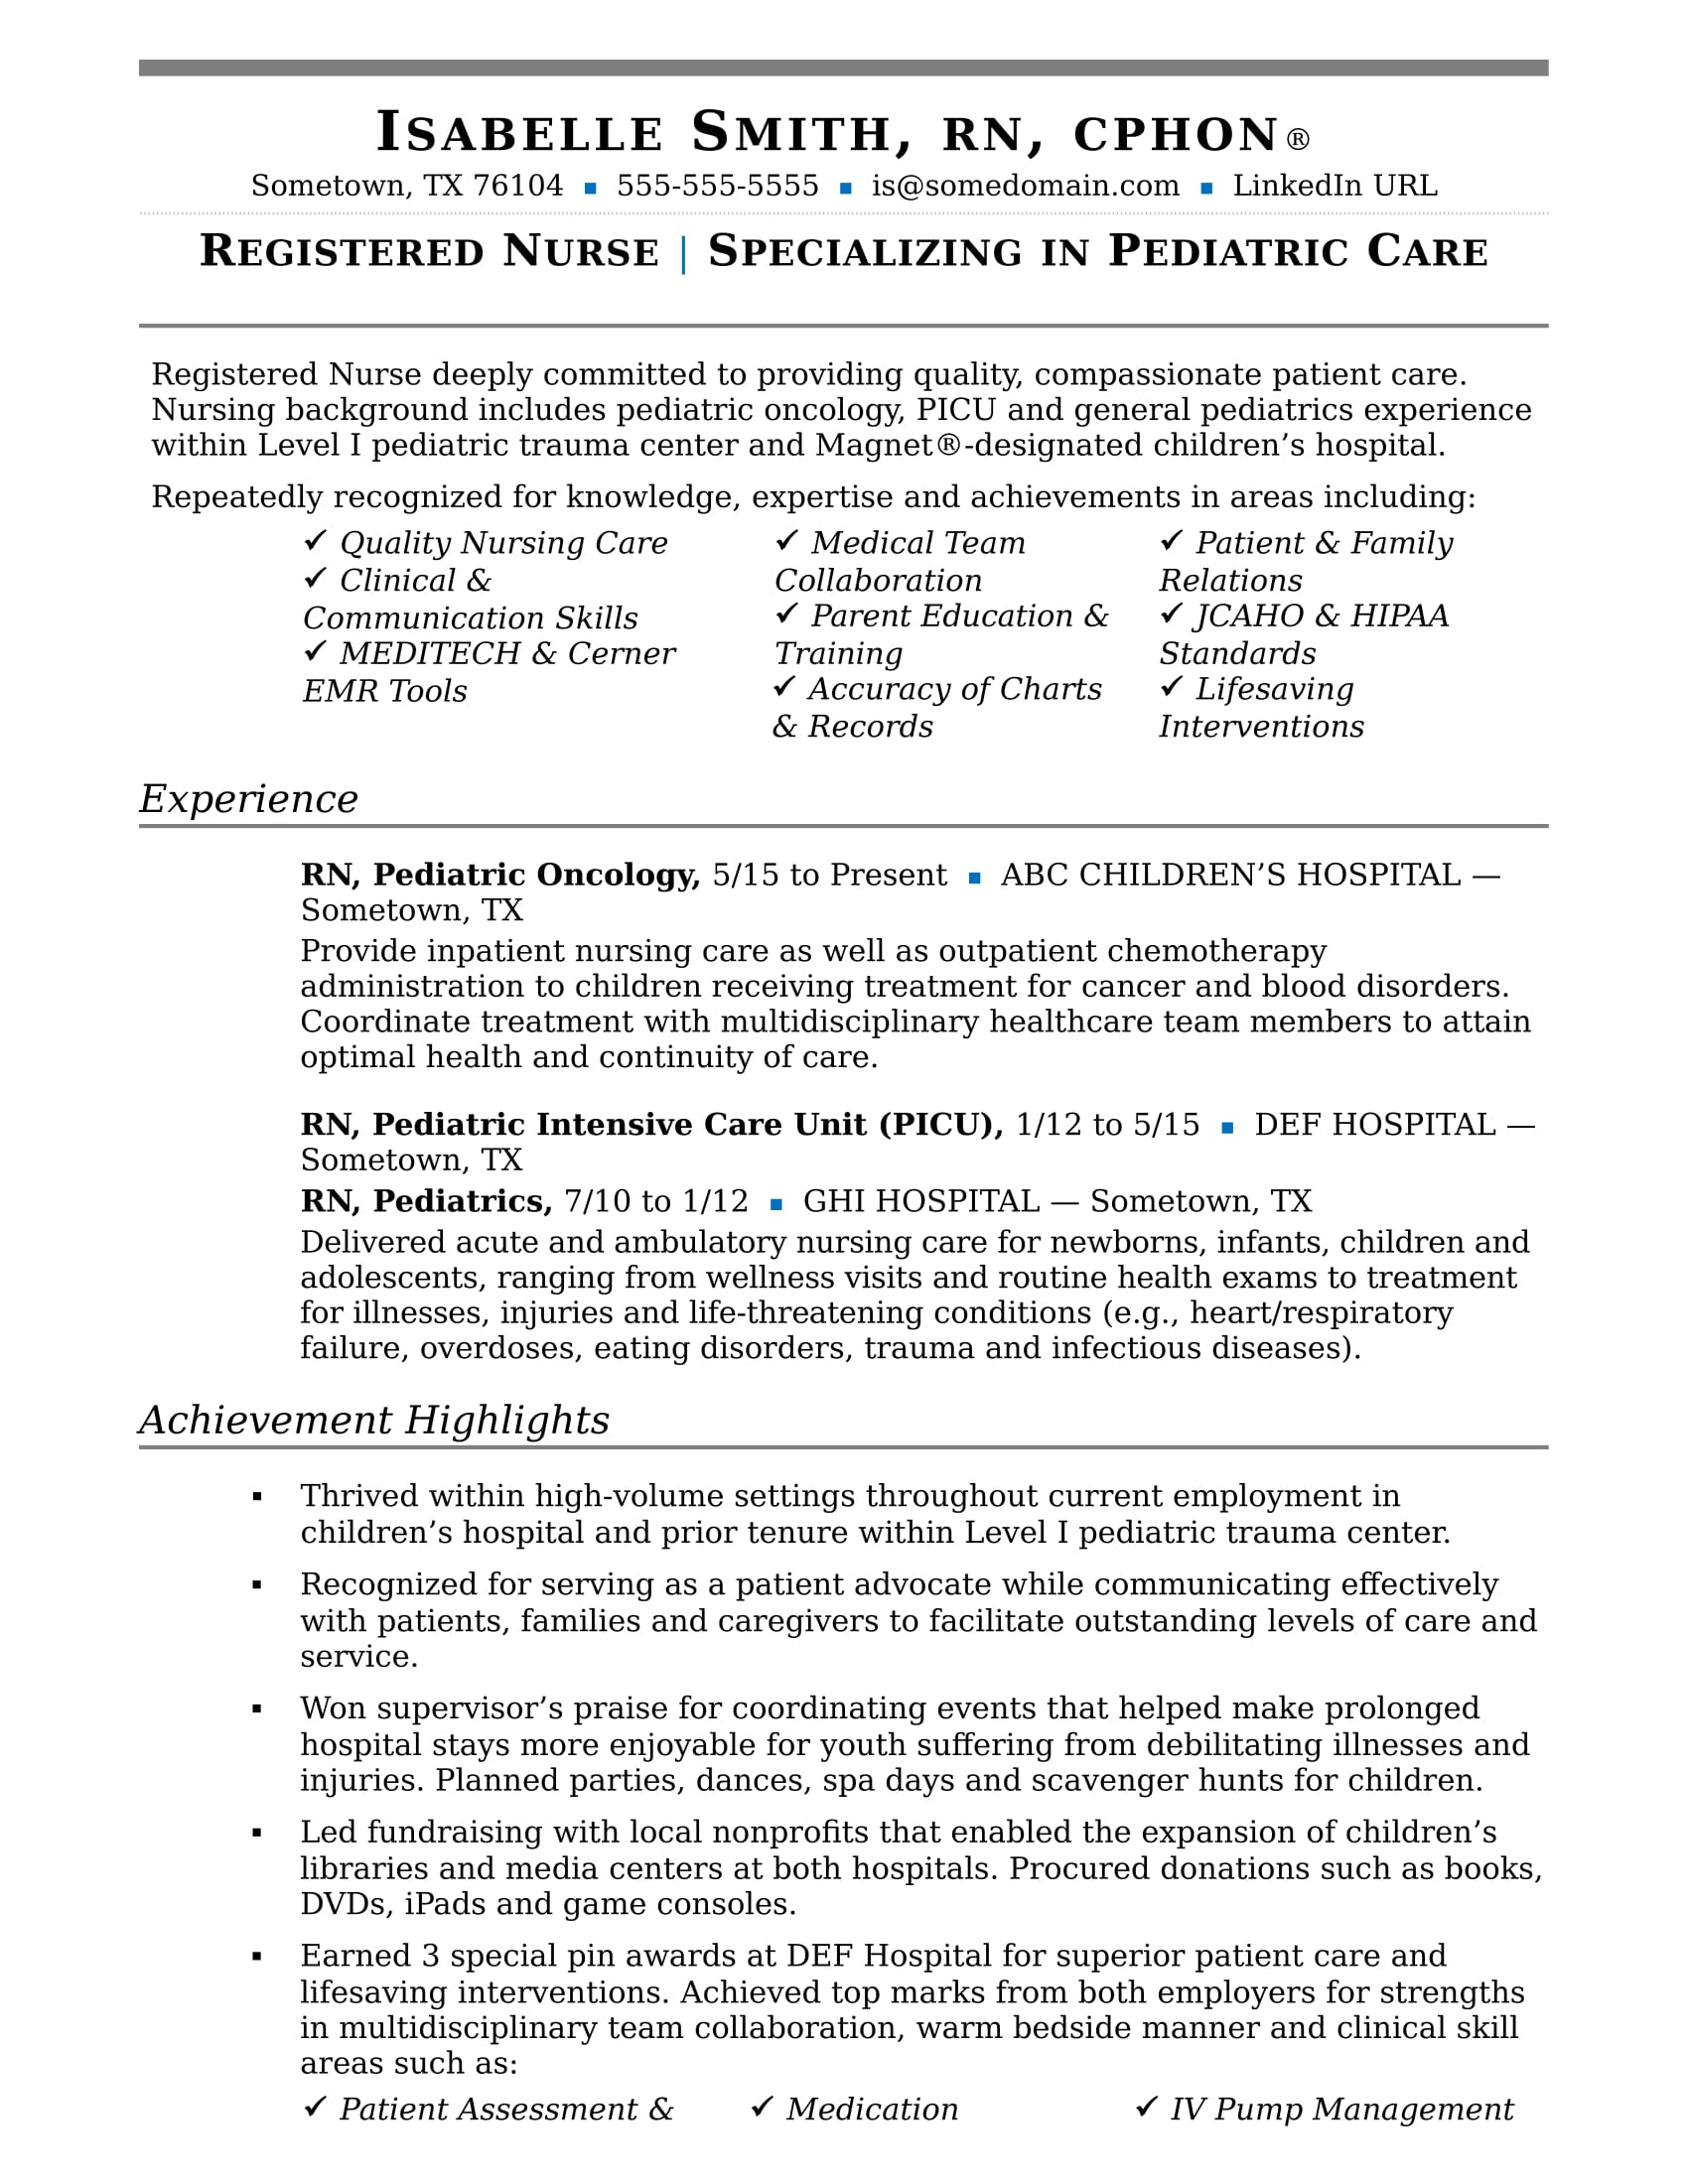 Nurse Resume Sample Monster Staff Format Business Insider Elon Musk Gael Faye Petit Pays Staff Nurse Resume Format Resume Best Resume Samples 2019 Business Insider Elon Musk Resume Resume Profile Examples For